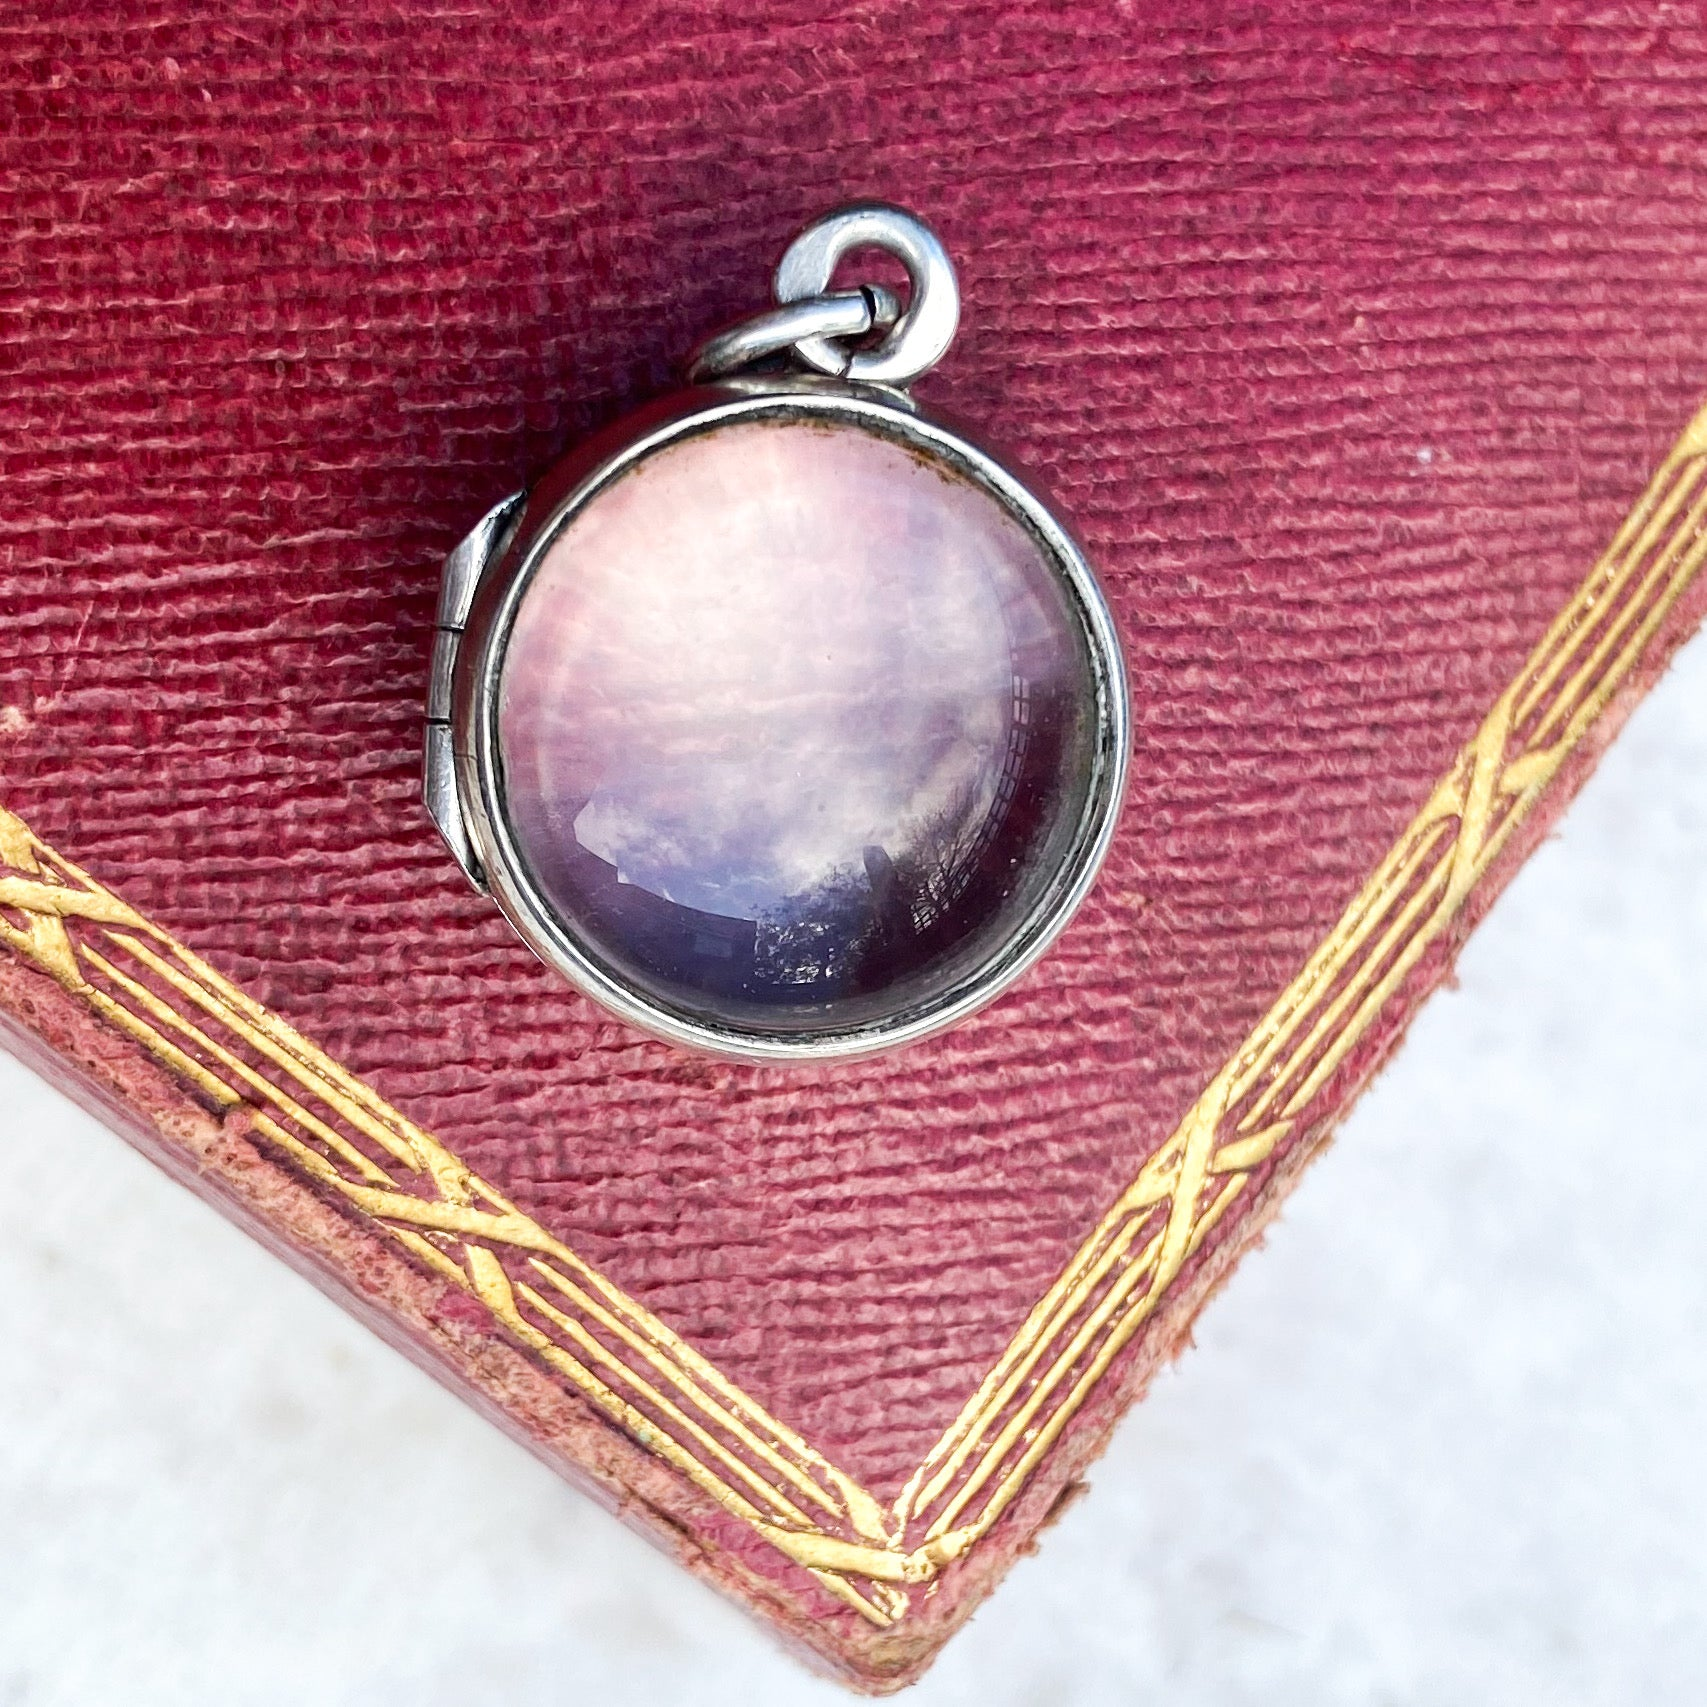 Rock Crystal 'Pool of Light' Locket in Silver